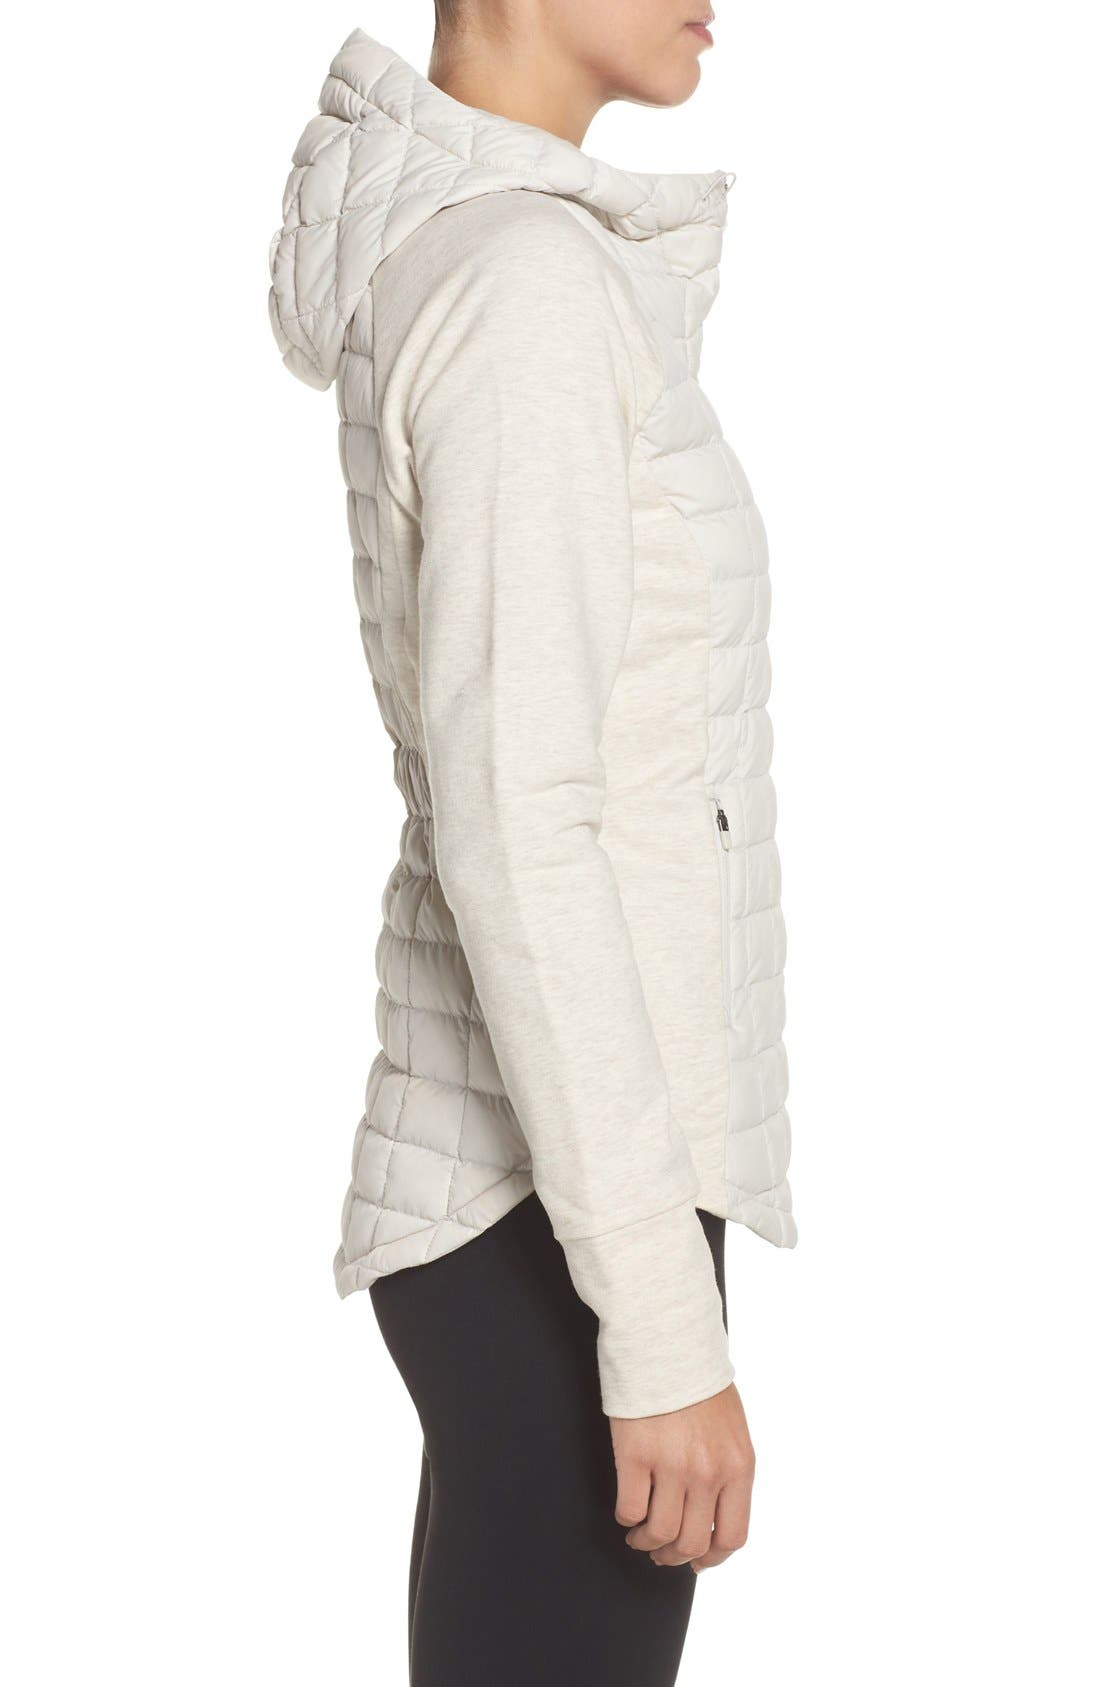 'Endeavor' ThermoBall PrimaLoft<sup>®</sup> Quilted Jacket,                             Alternate thumbnail 3, color,                             Moonlight Ivory/ Ivory White